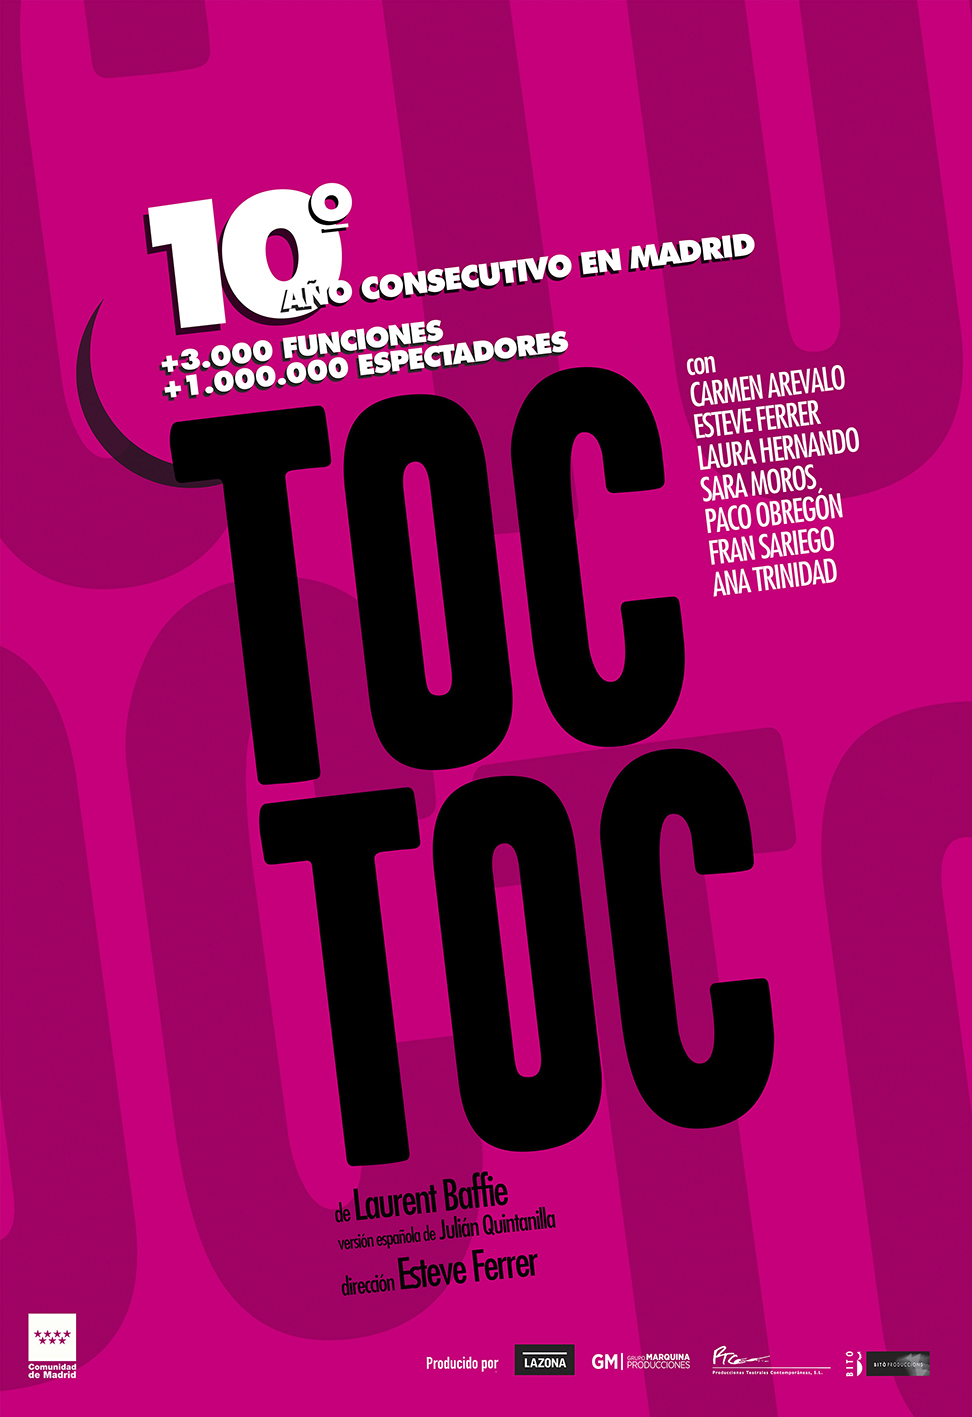 toc-toc-carrion-valladolid.jpg